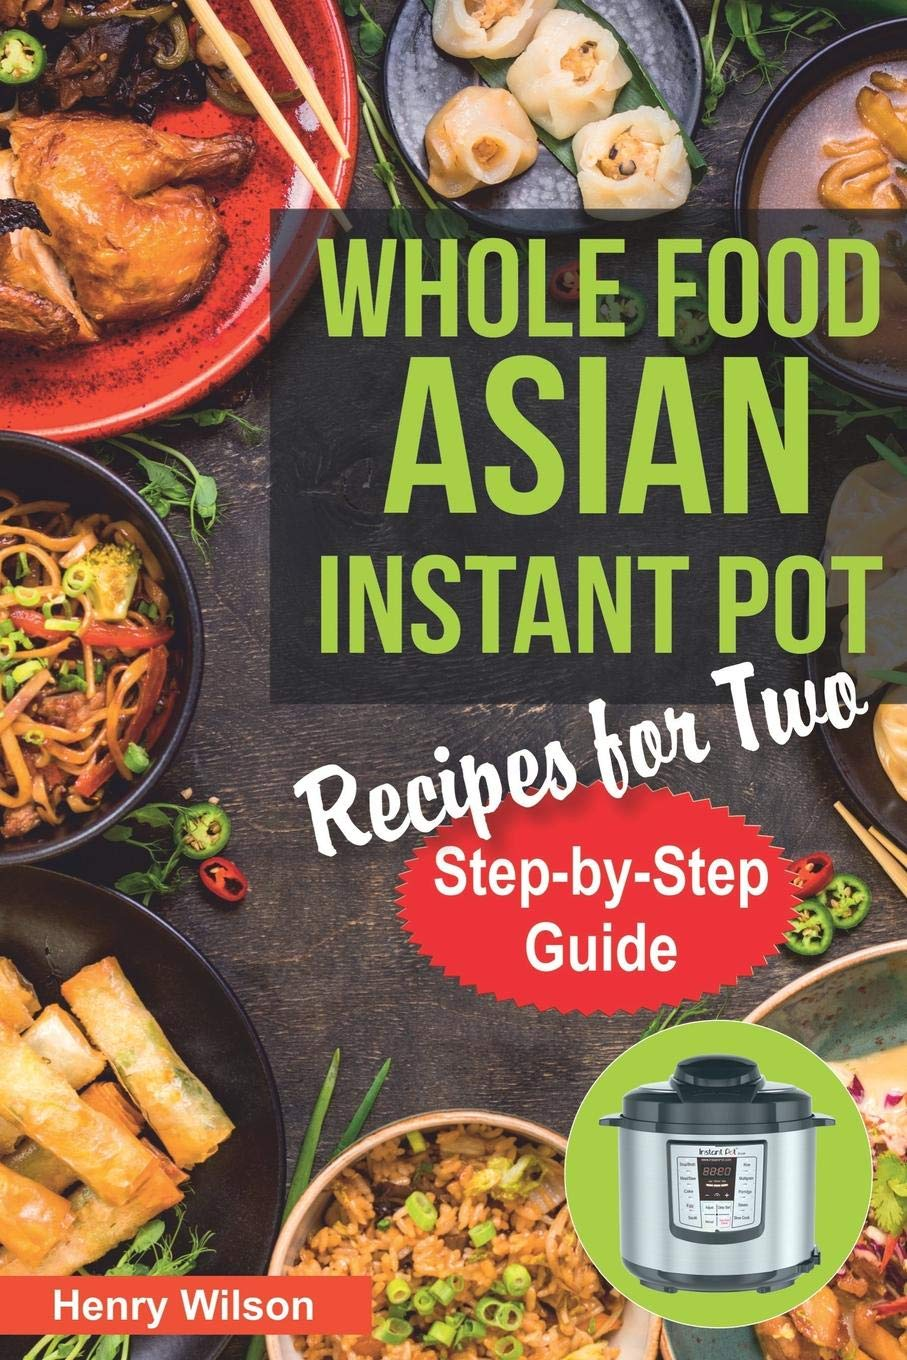 Whole Food Asian Instant Pot Recipes for Two: Traditional and Healthy Asian Recipes for Pressure Cooker. (+ 7-Days Asian Keto Diet Plan for Weight Loss!) - Tolerant Planet